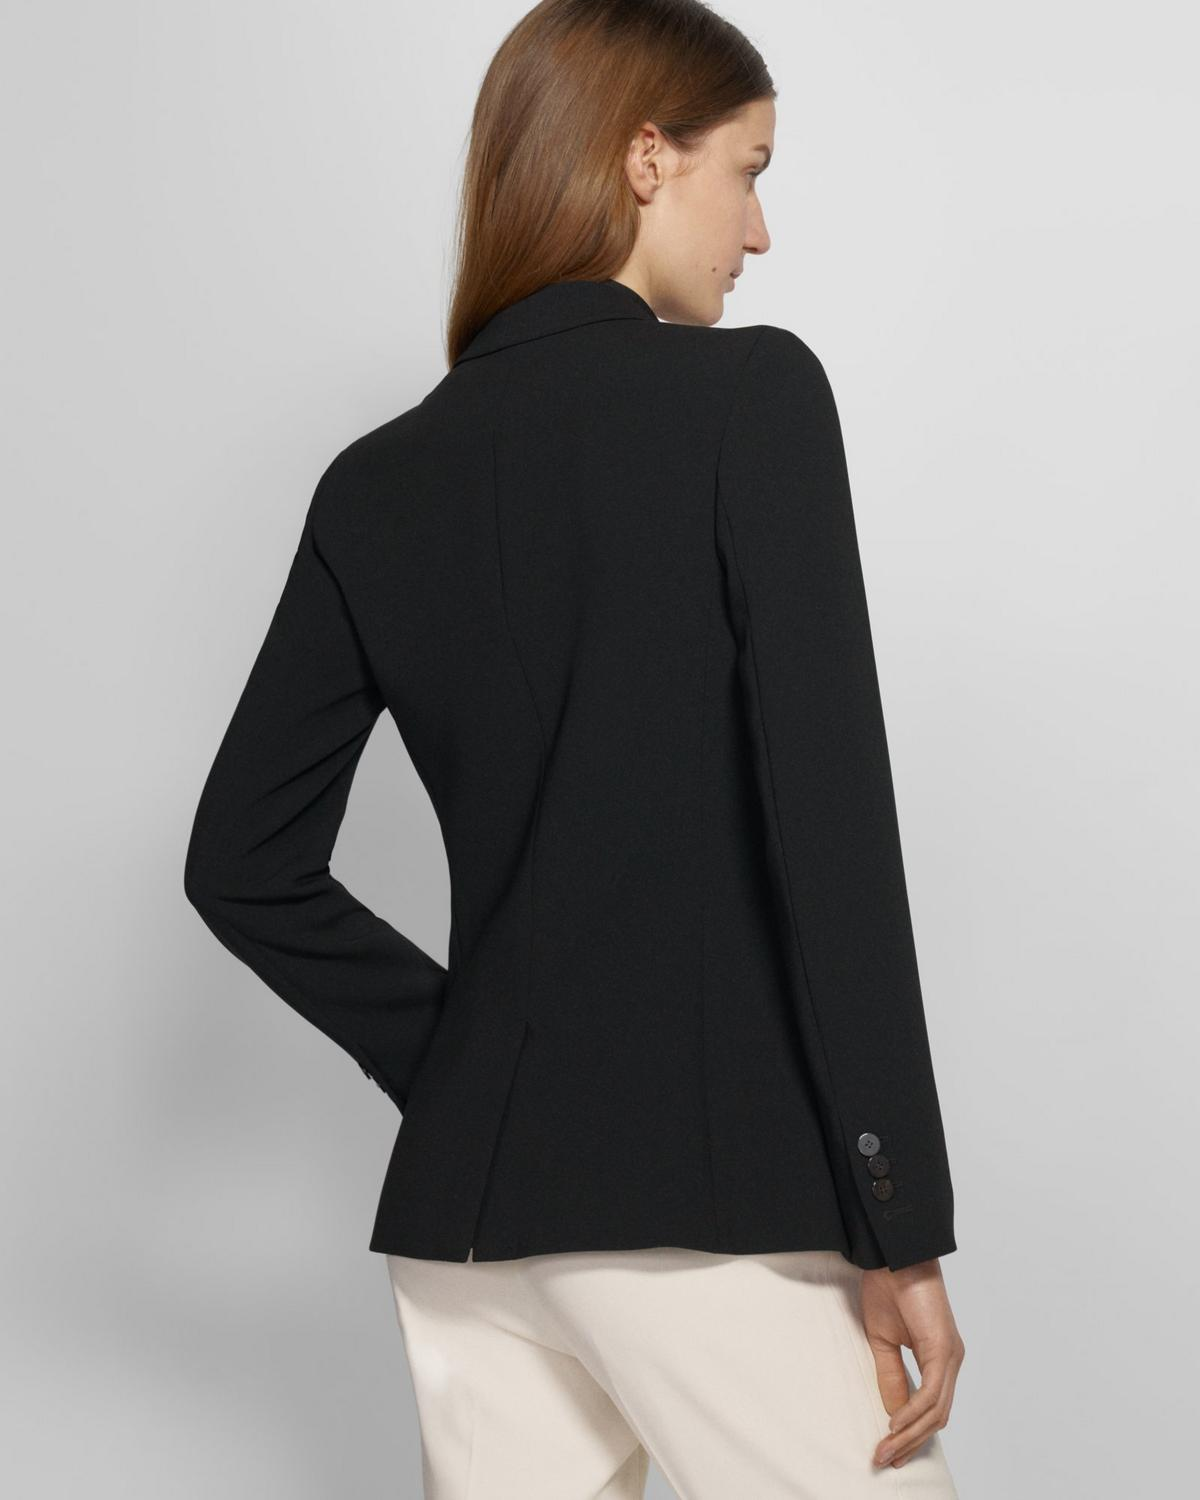 Staple Blazer in Crepe